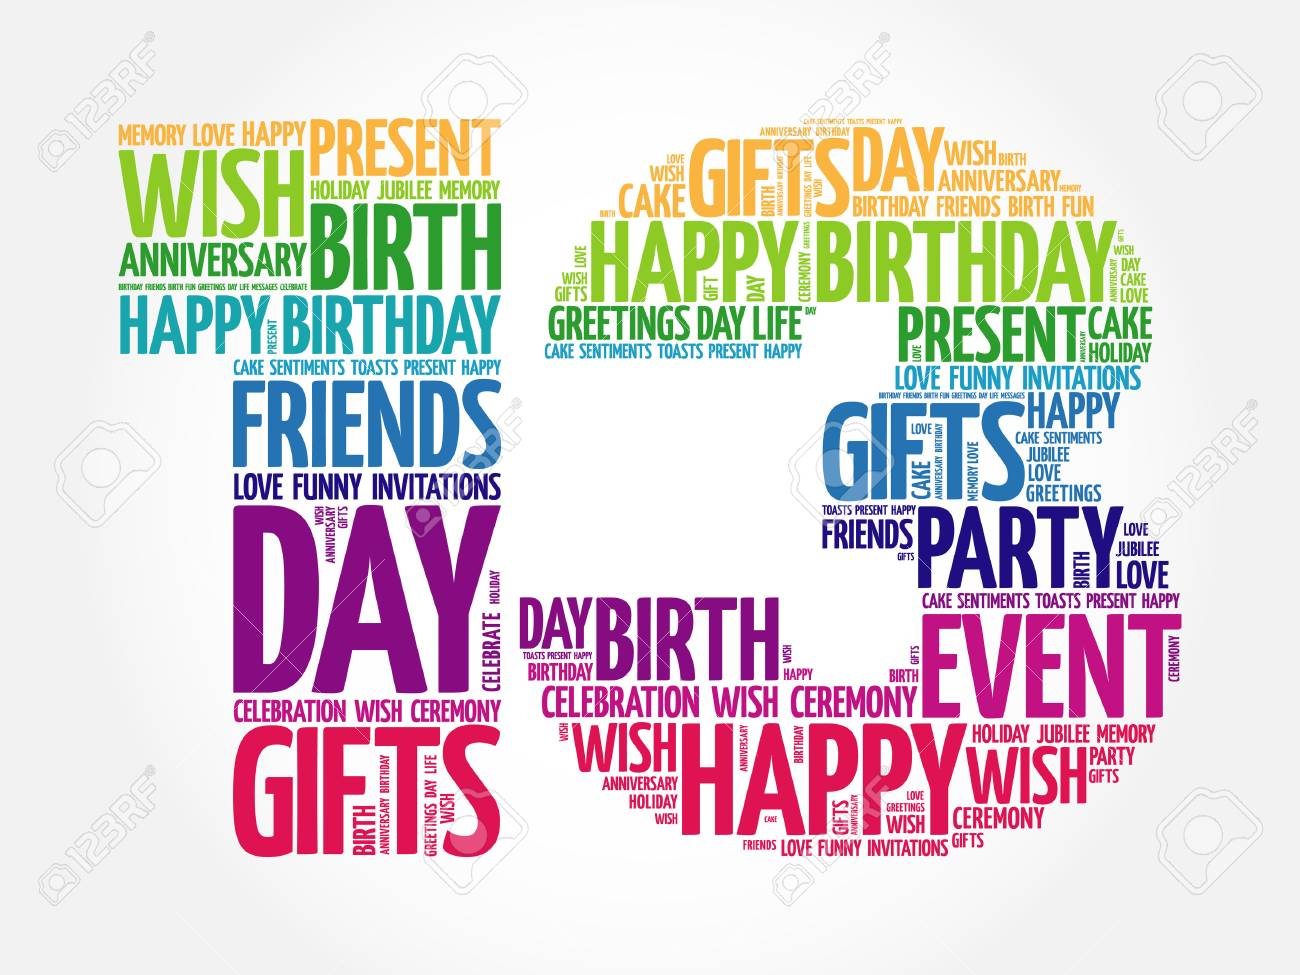 Happy 13th birthday word cloud collage concept.